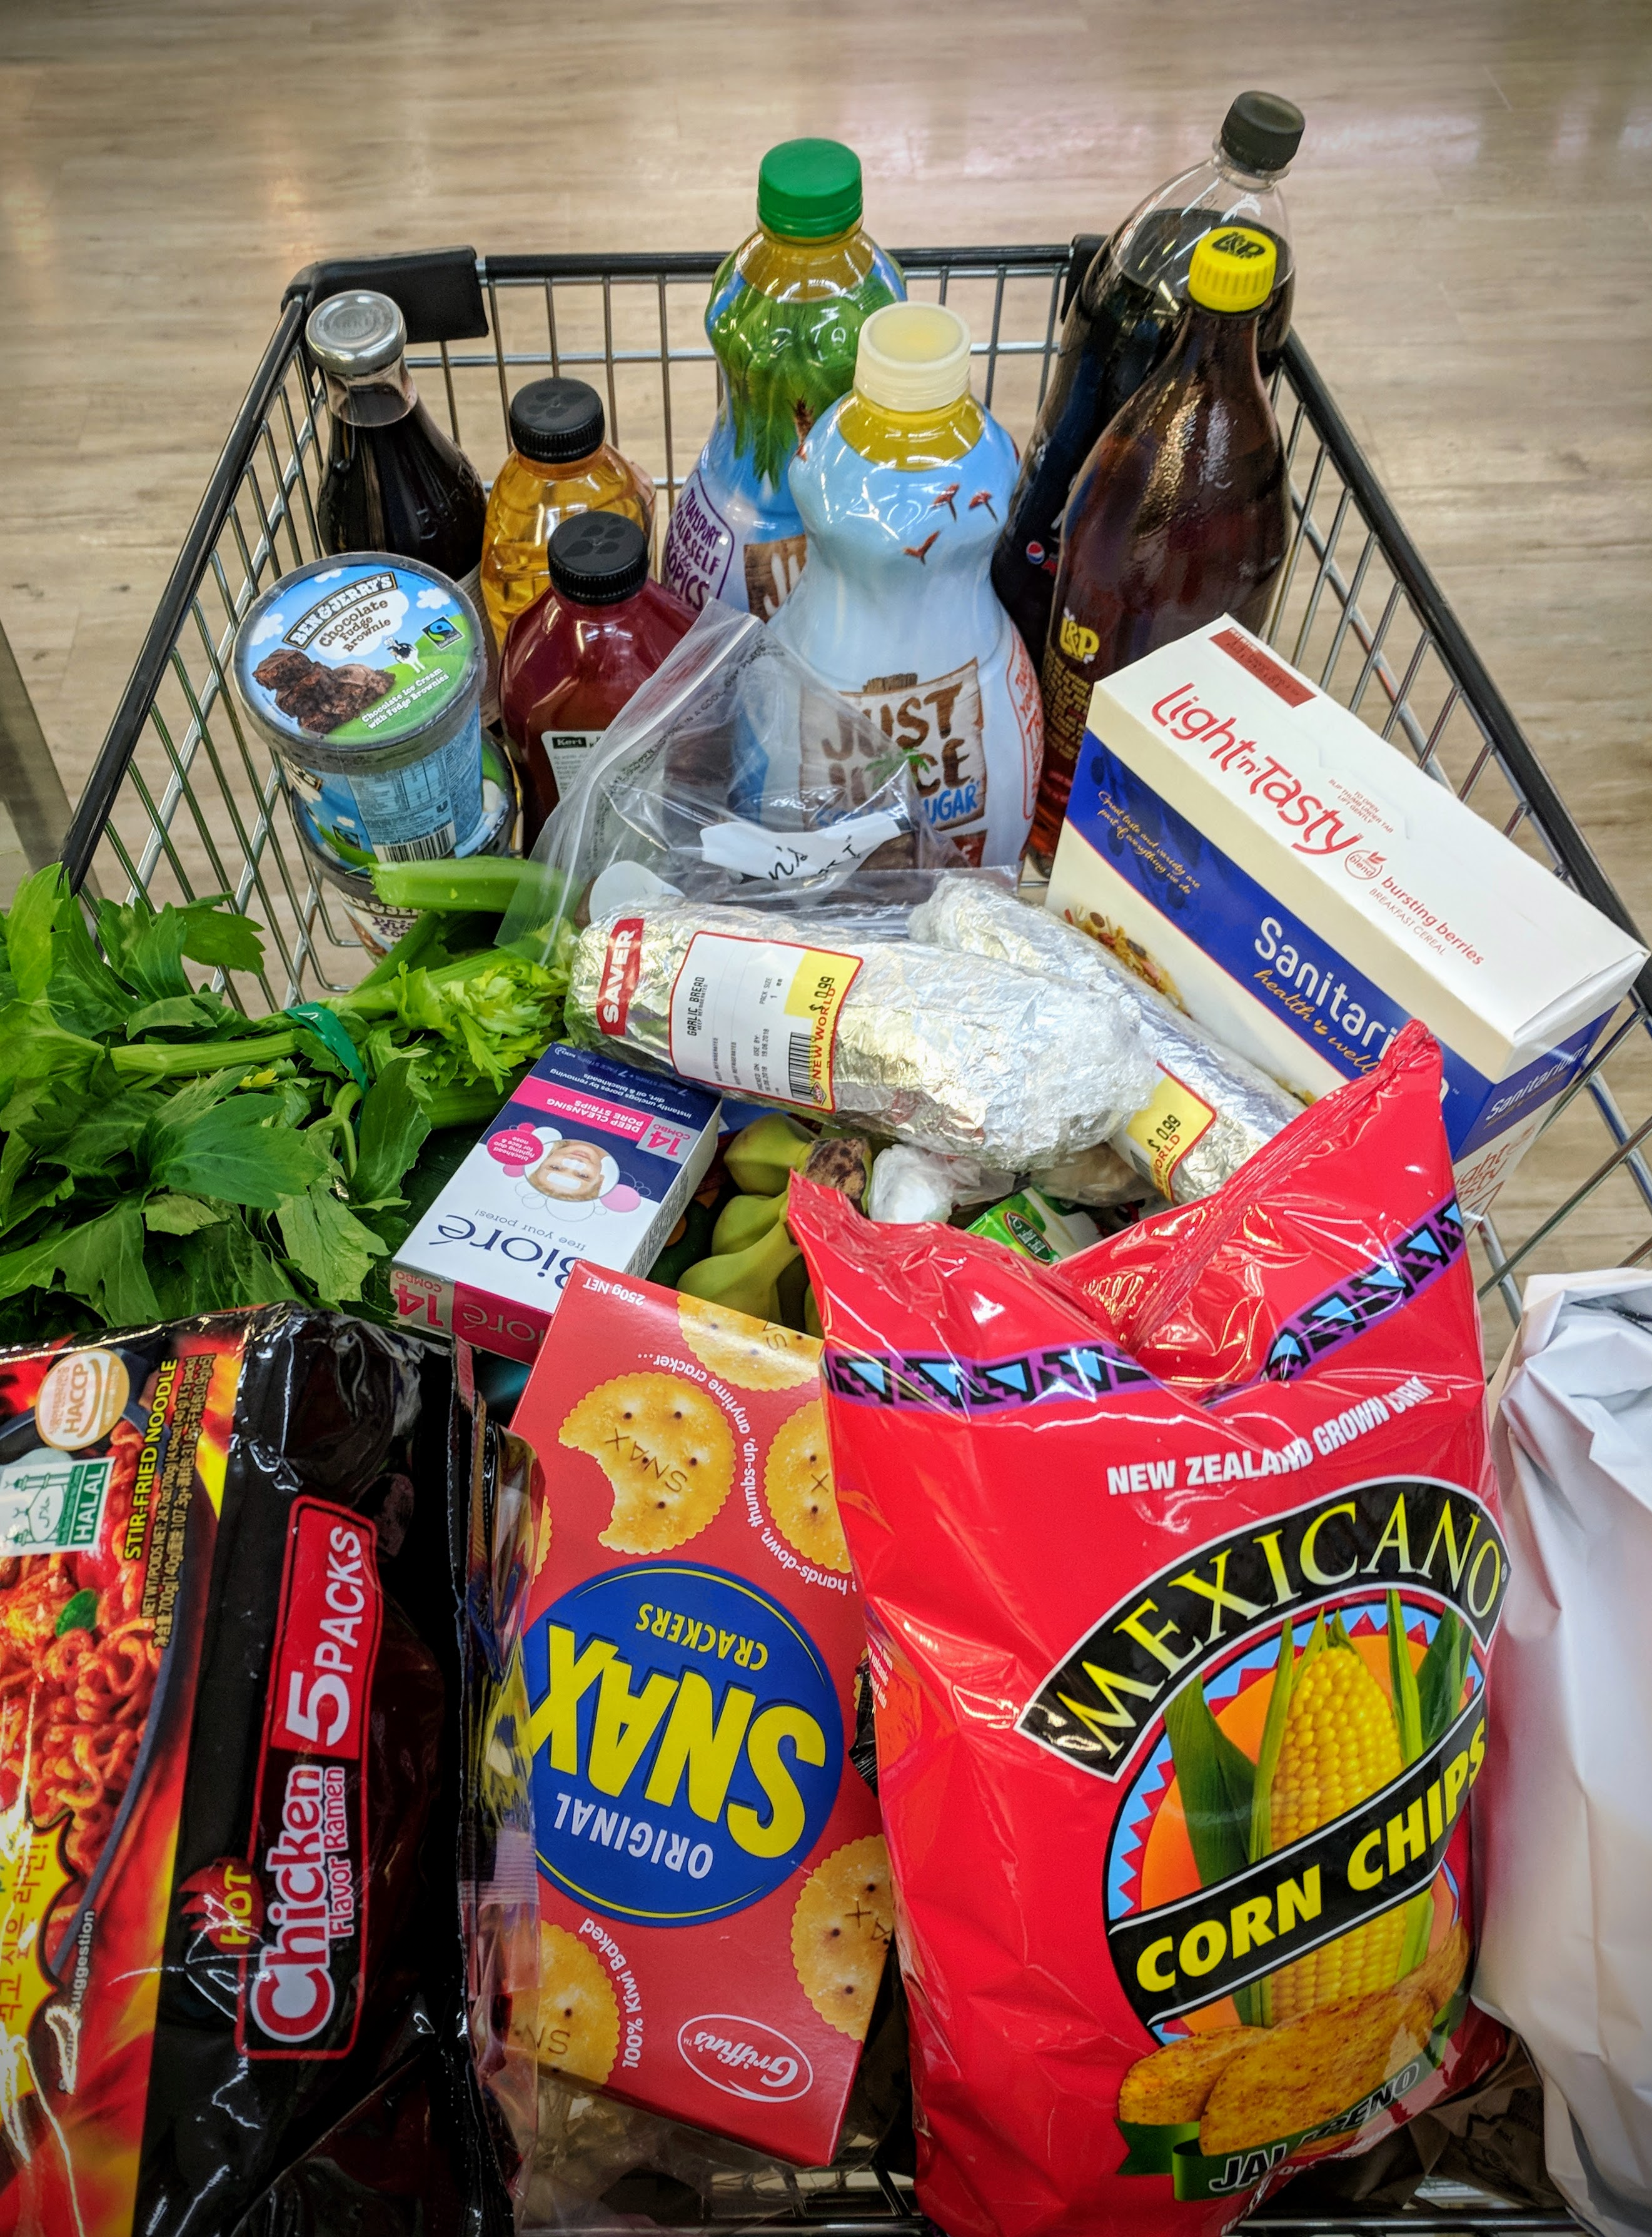 Shopping trolley full with groceries